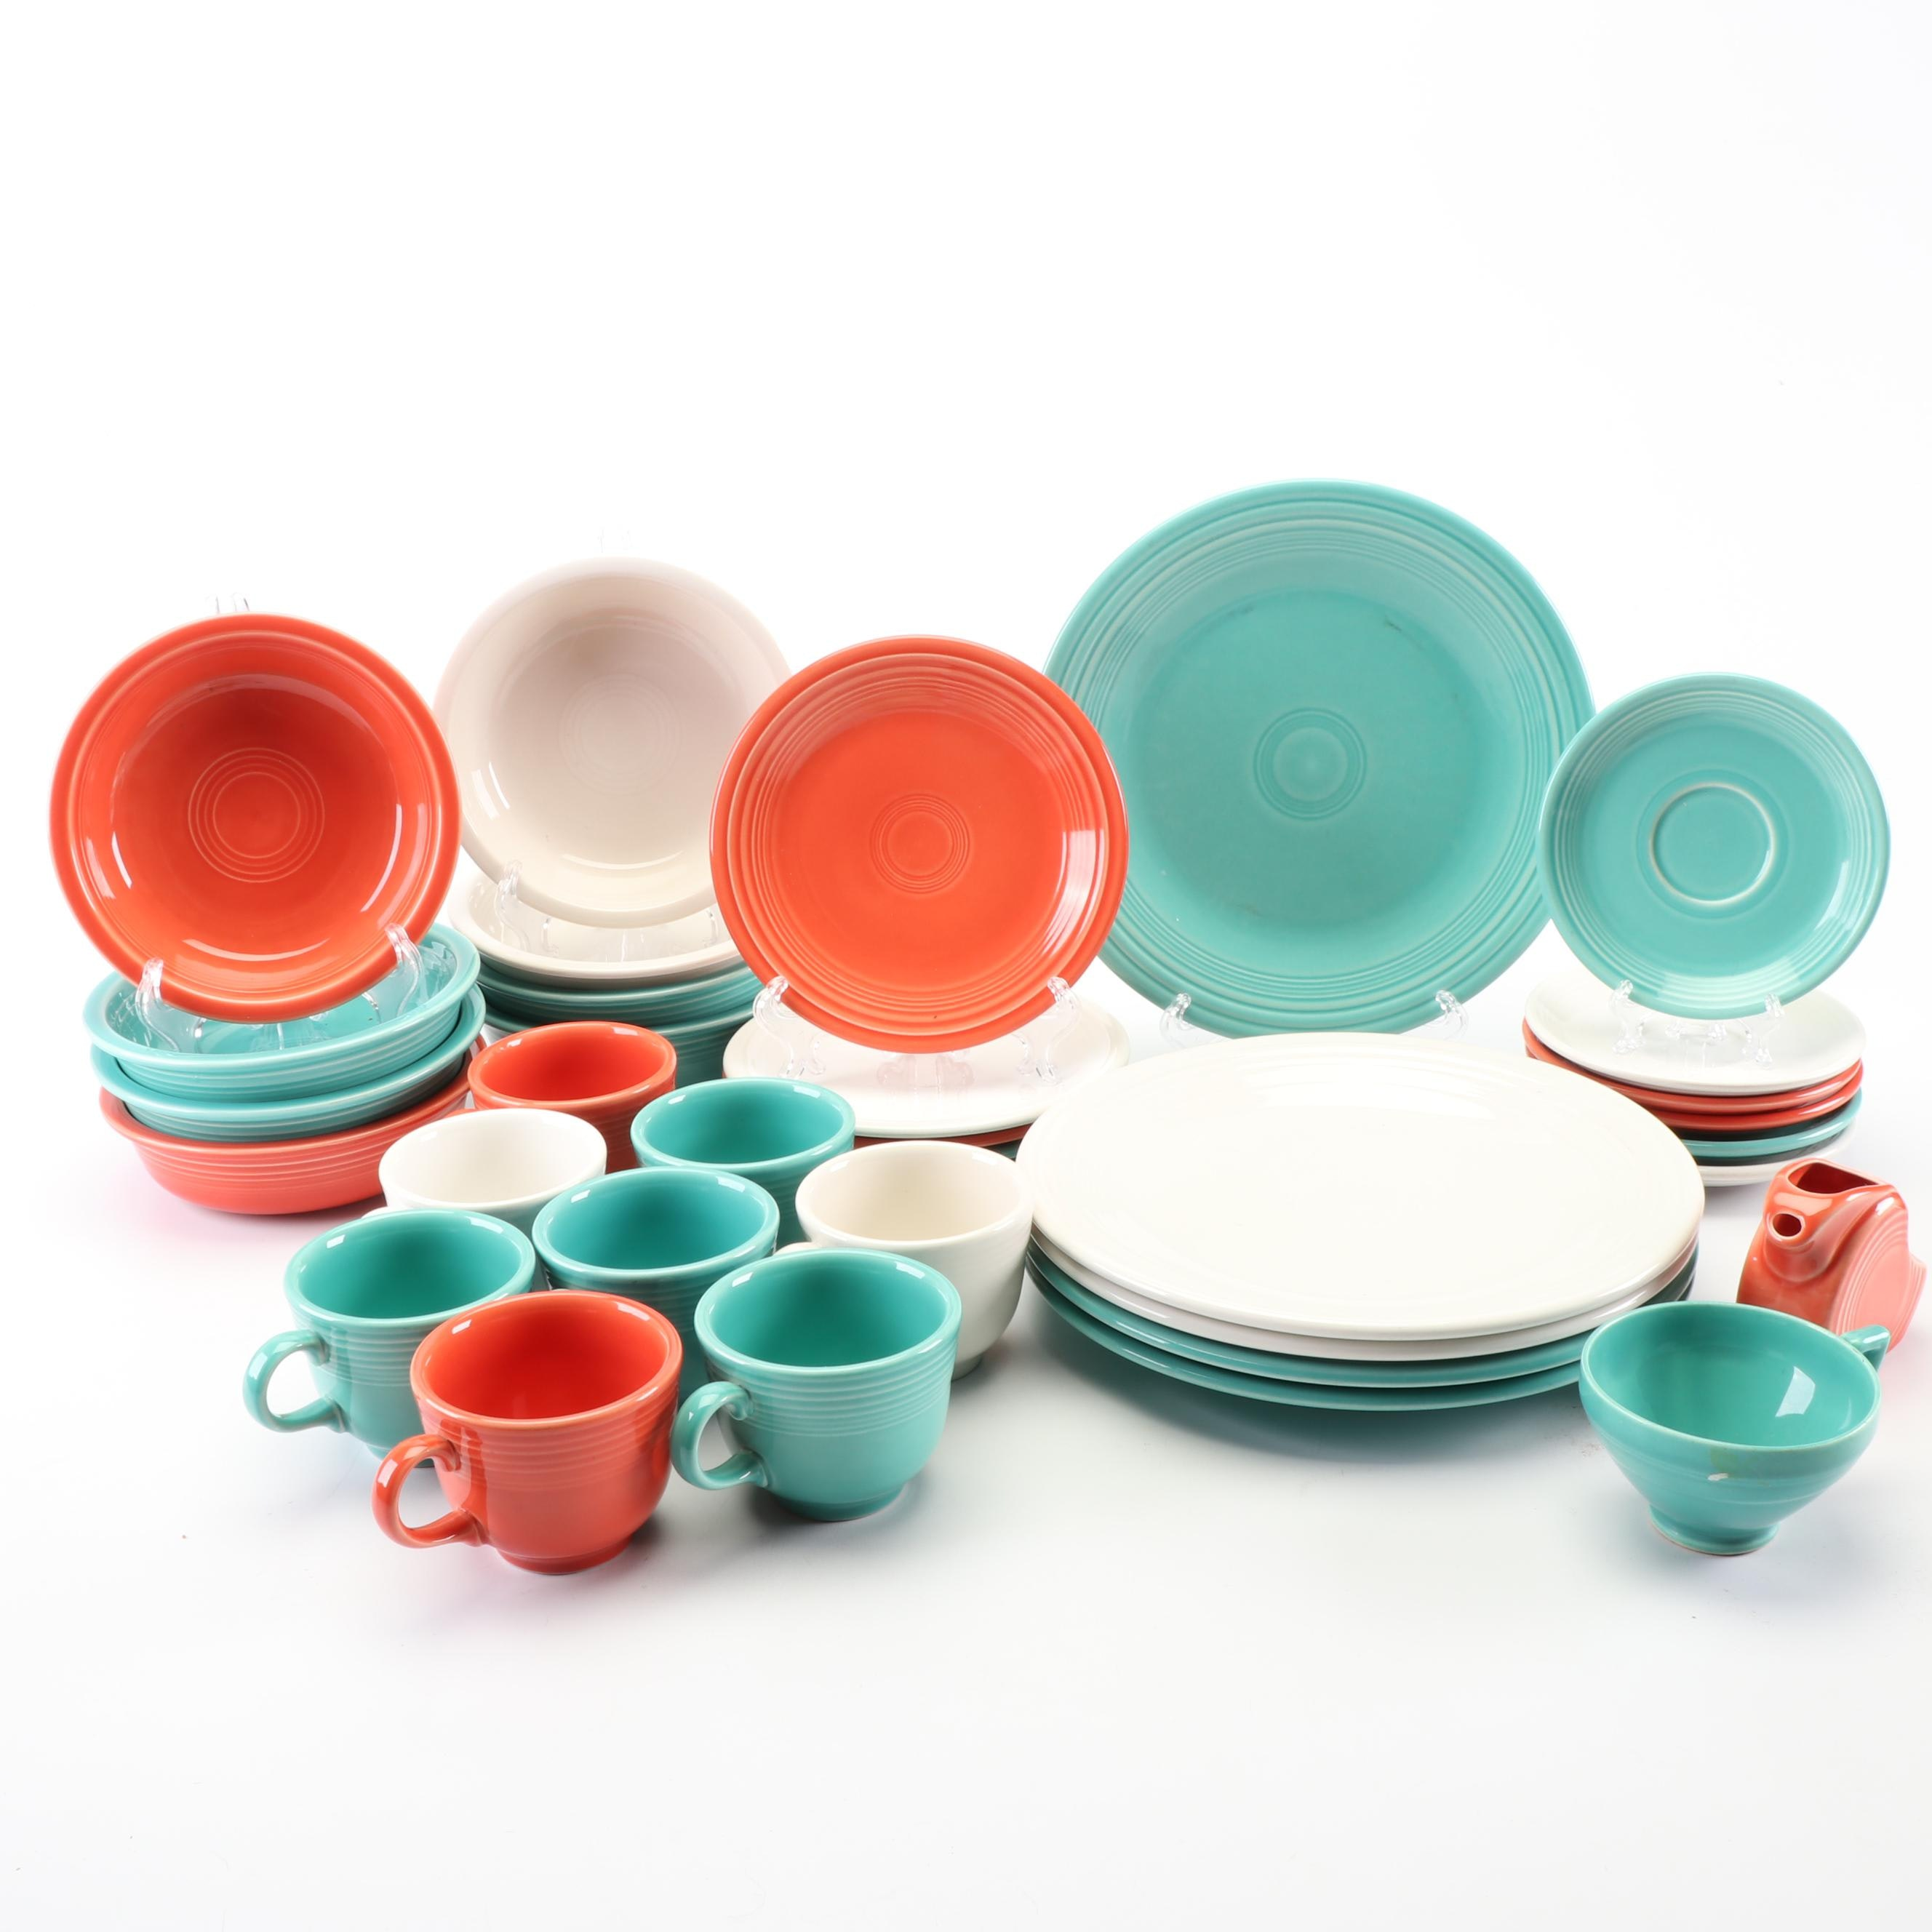 Fiestaware Coffee Cups, Saucers, Creamer, and Dining Set